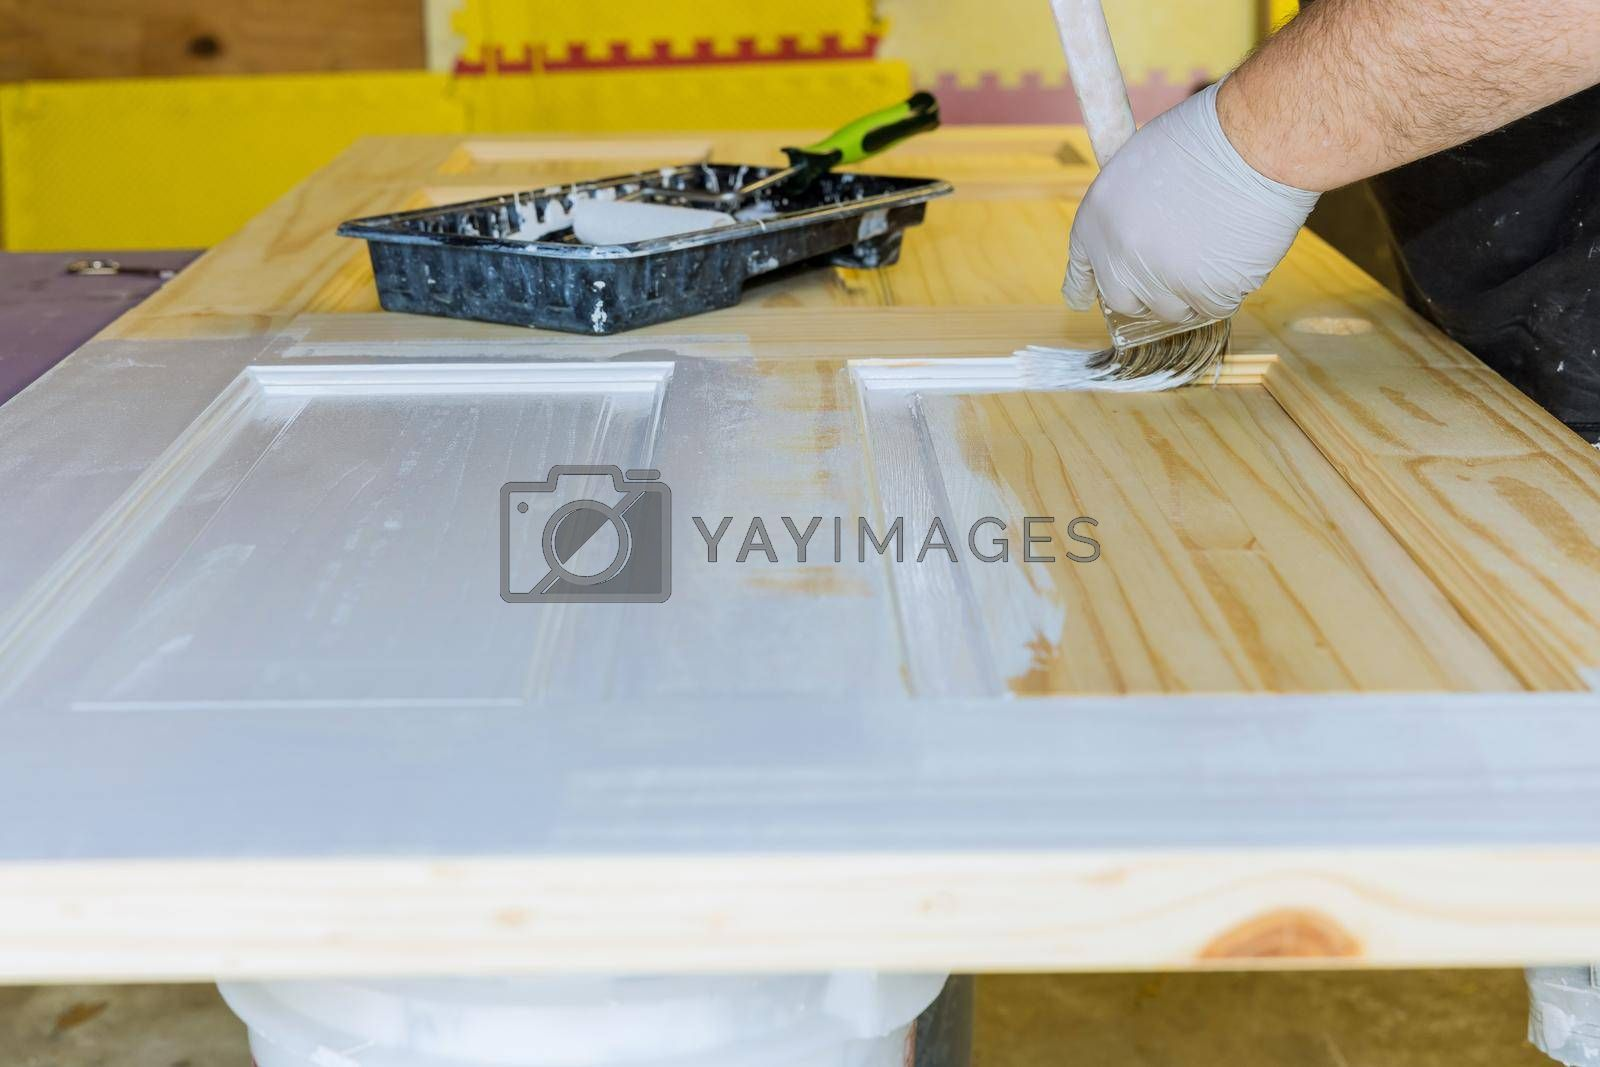 Handyman home renovation painter of painting doors trim using hand paint brush painting with gloves